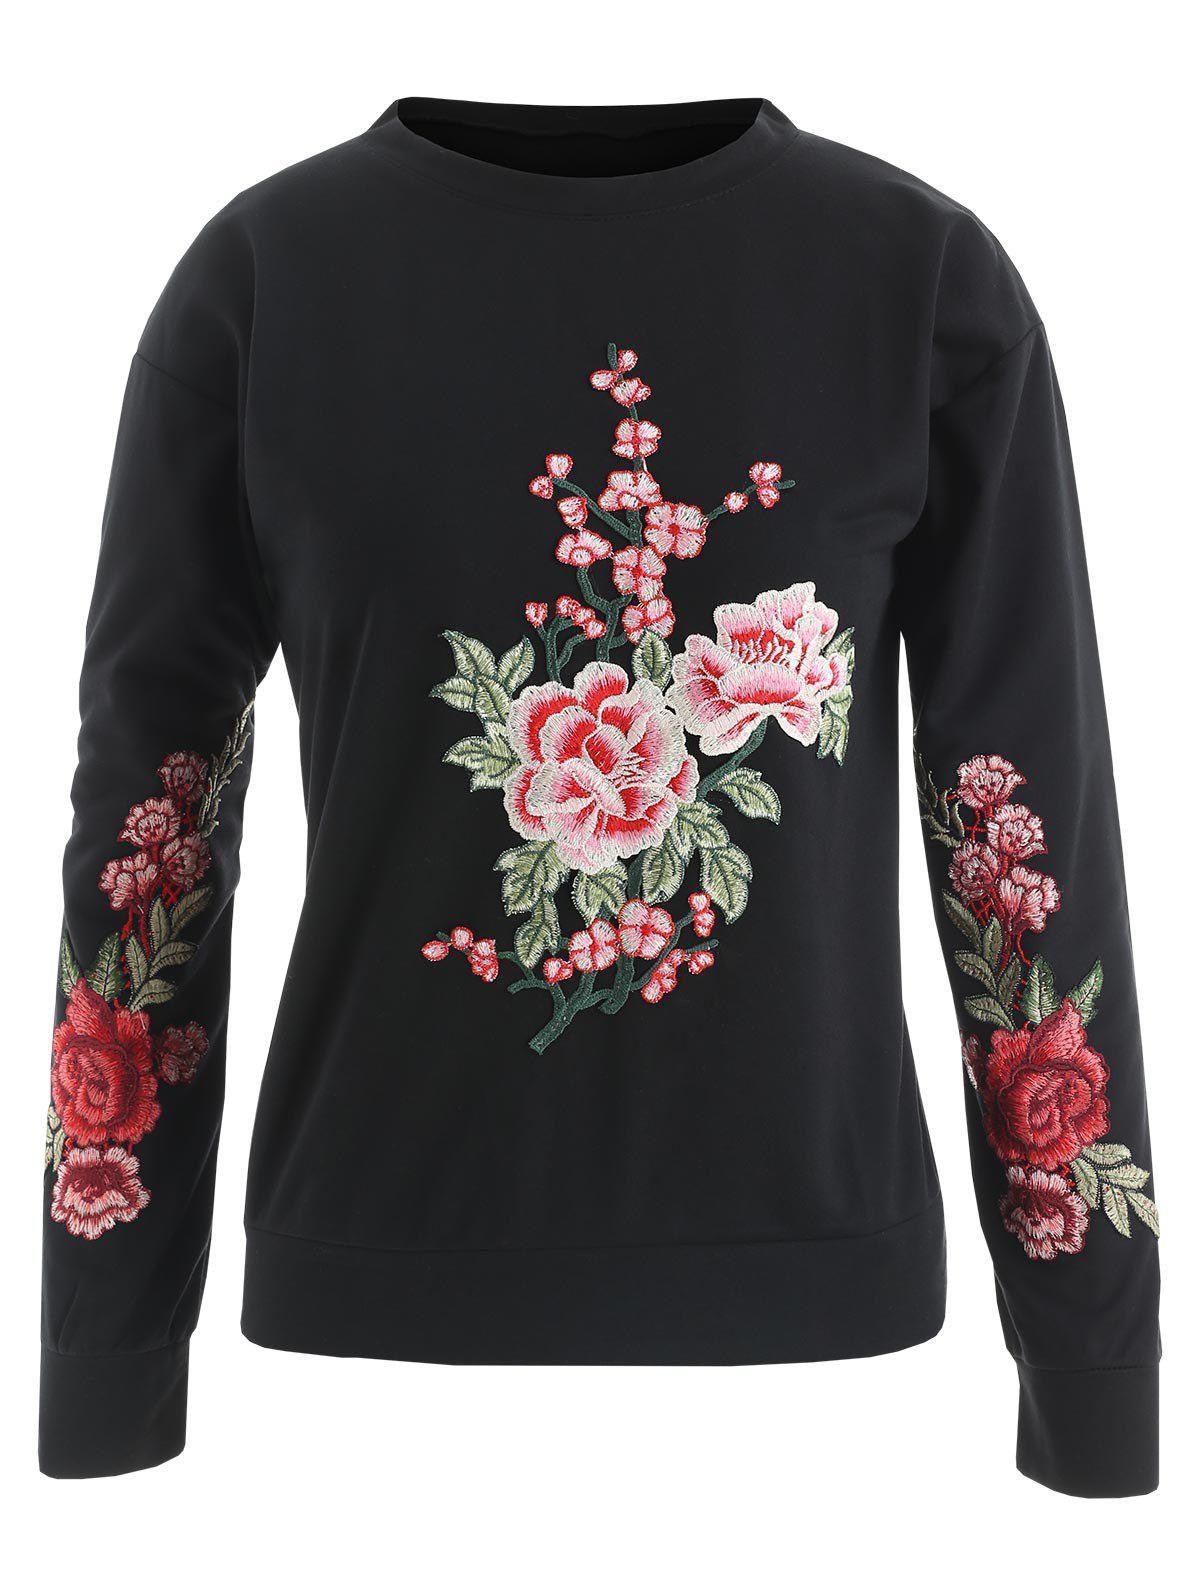 Unique Floral Embroidered Pullover Sweatshirt